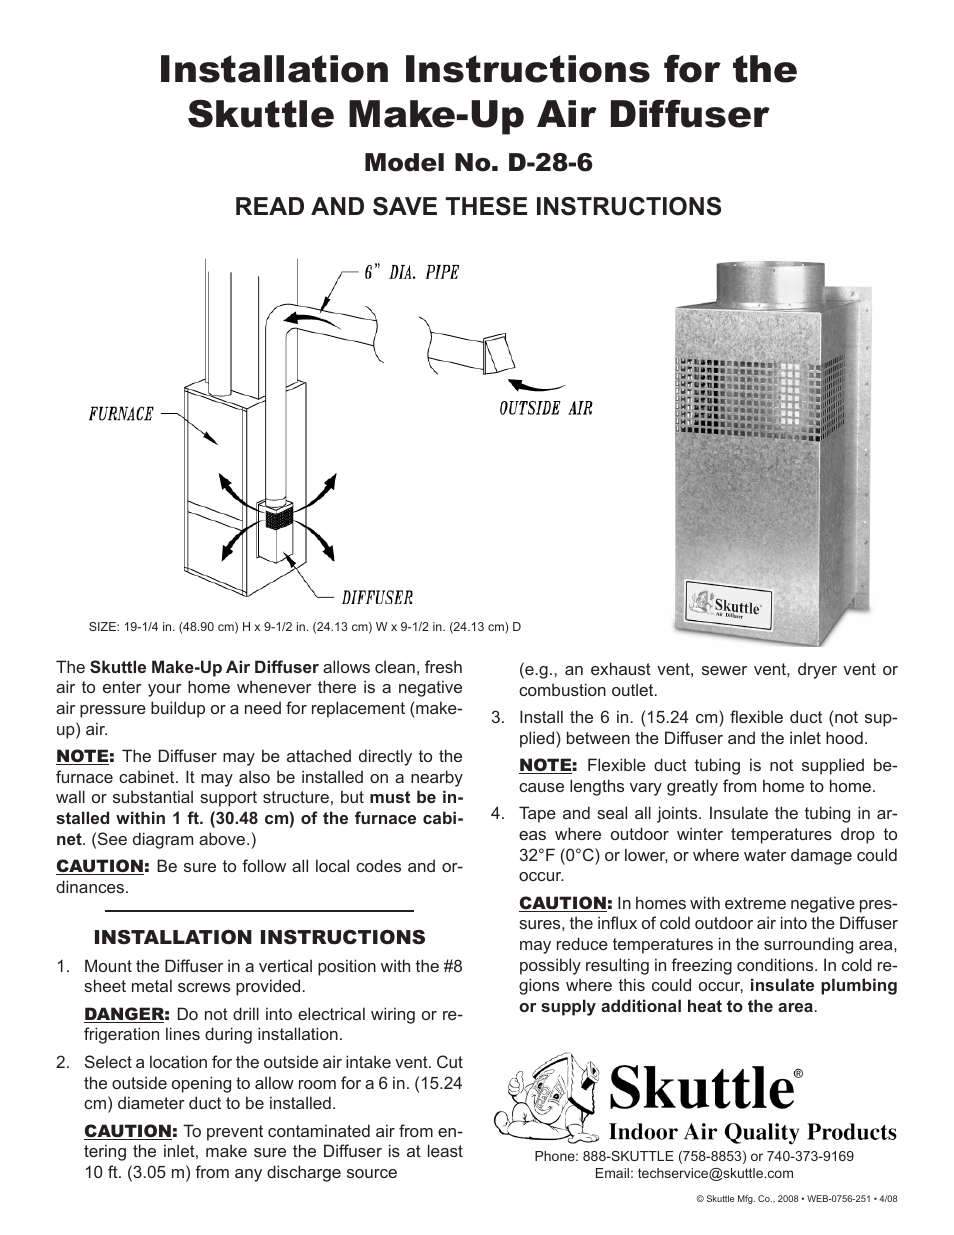 Modern Skuttle Crest - Electrical and Wiring Diagram Ideas - thetada.com